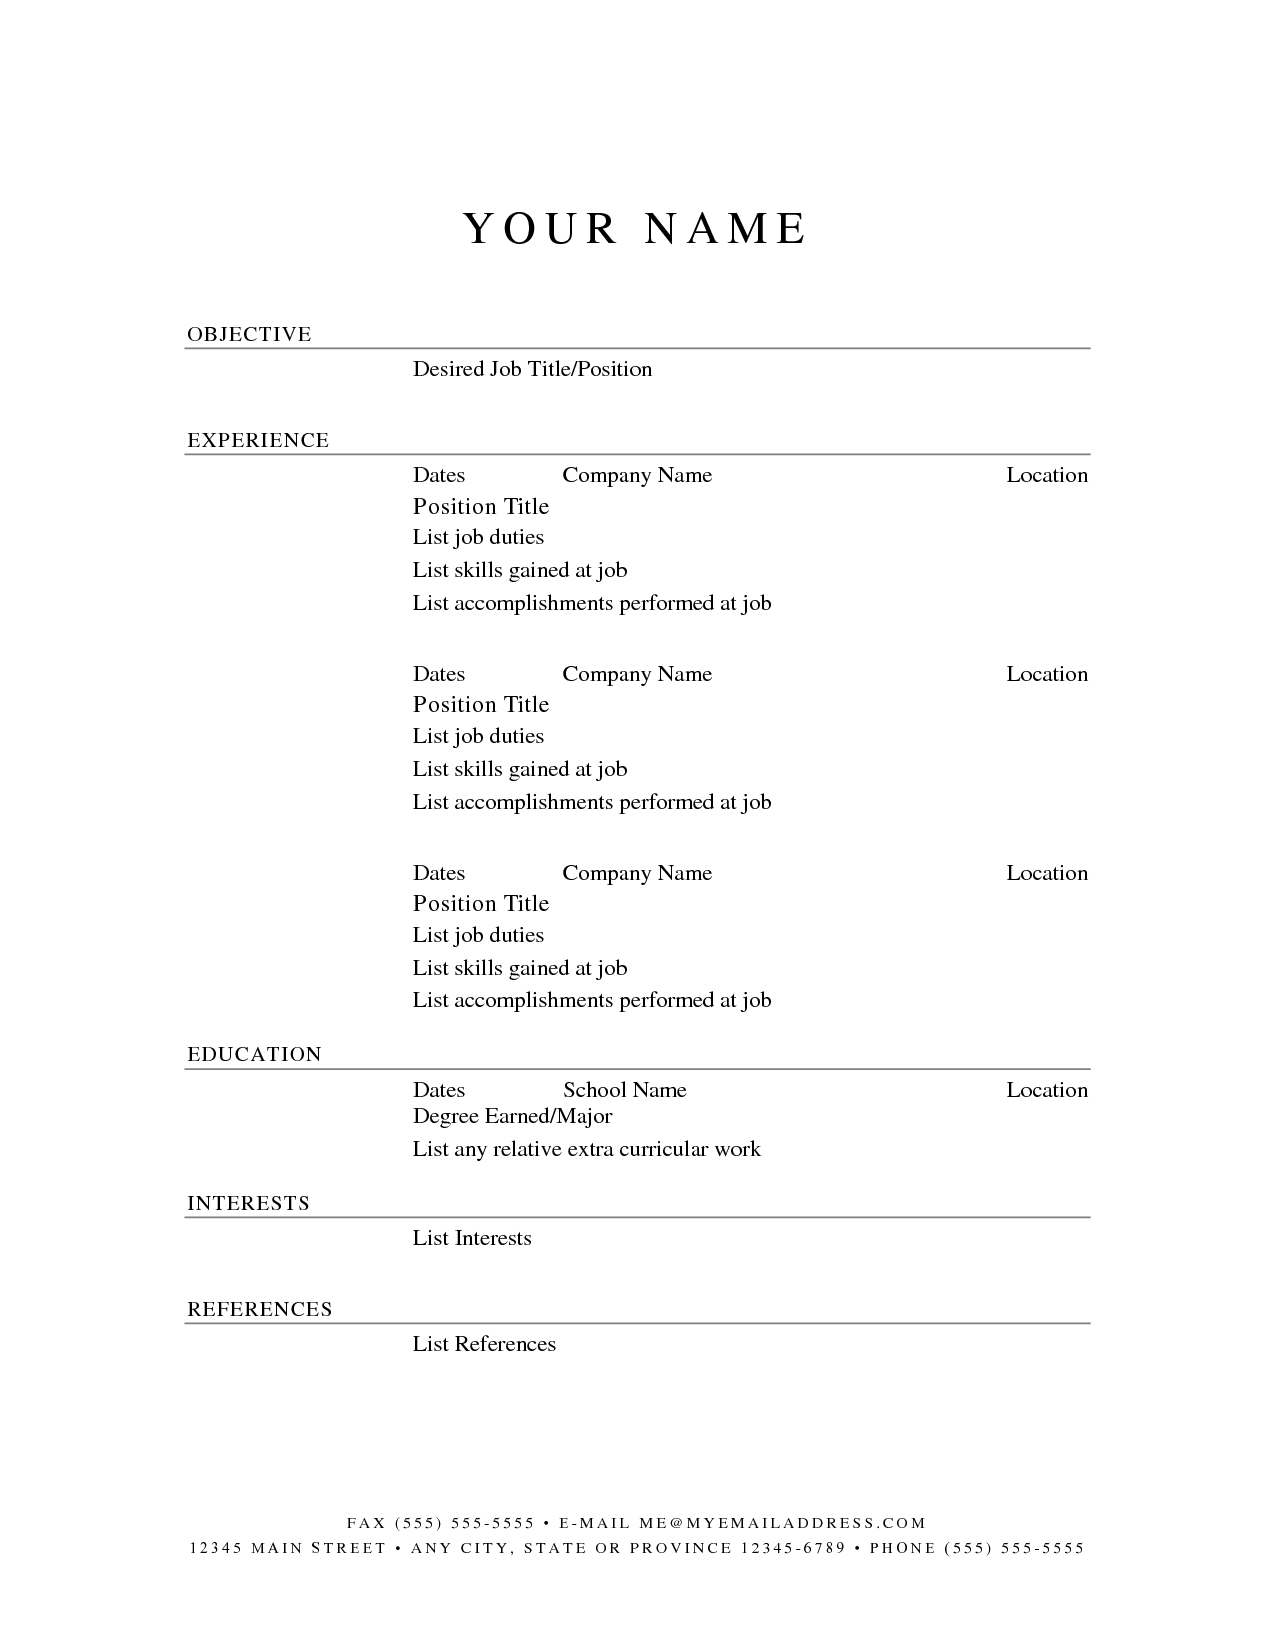 Printable Resume Templates | Free Printable Resume Template - Free Printable Resume